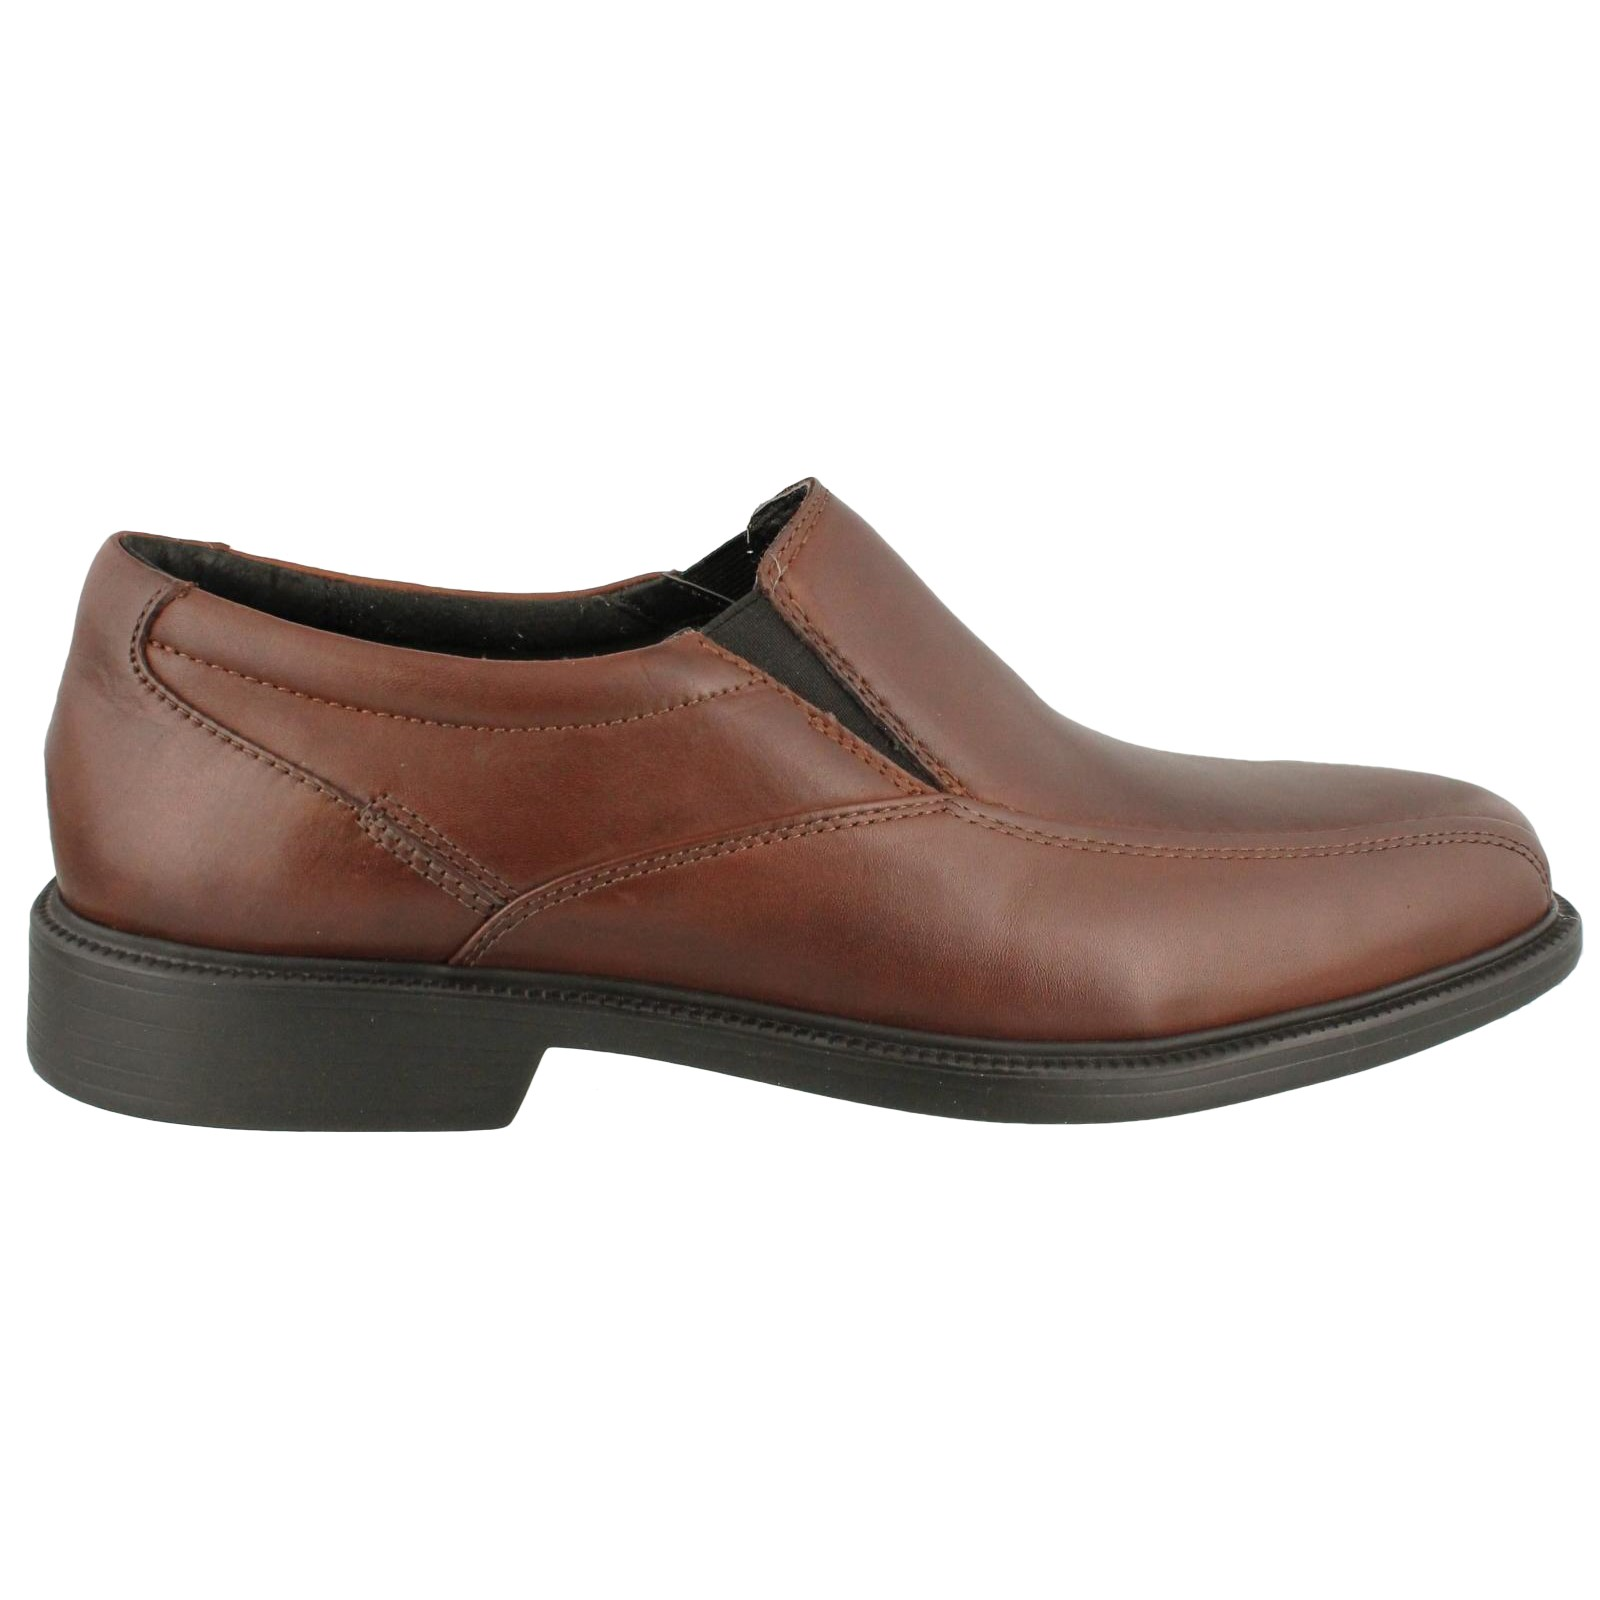 Men's Bostonian Flexlite, Bolton Slip-On dress shoe